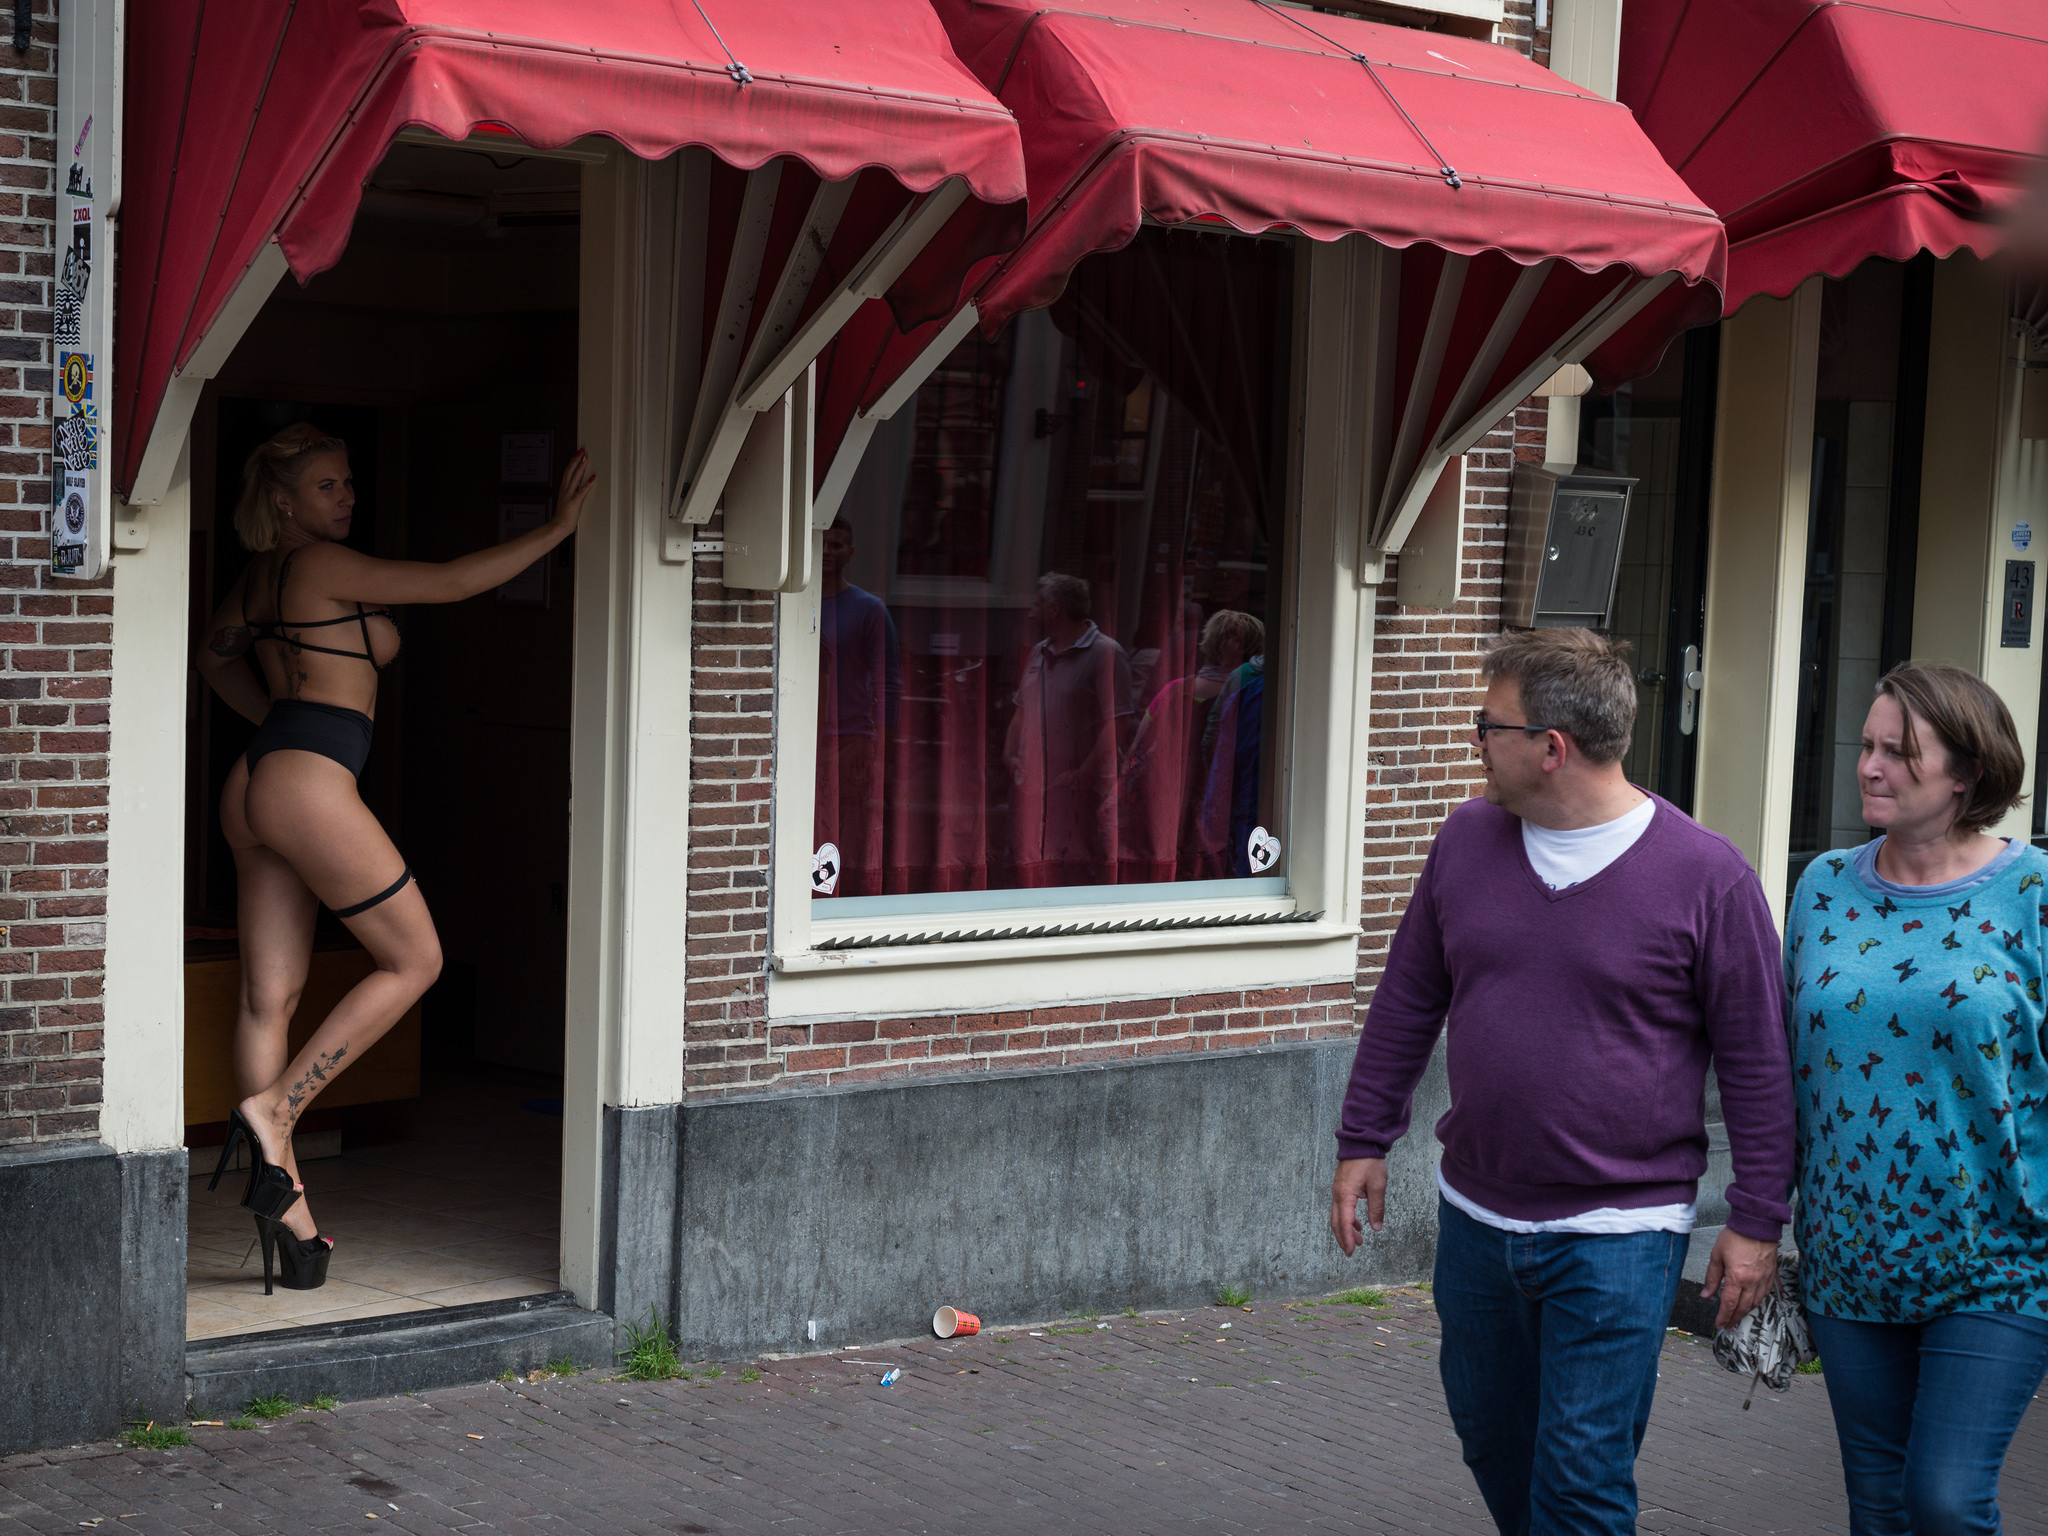 Prostitution in Amsterdam: Misadventures in the World's Most ...